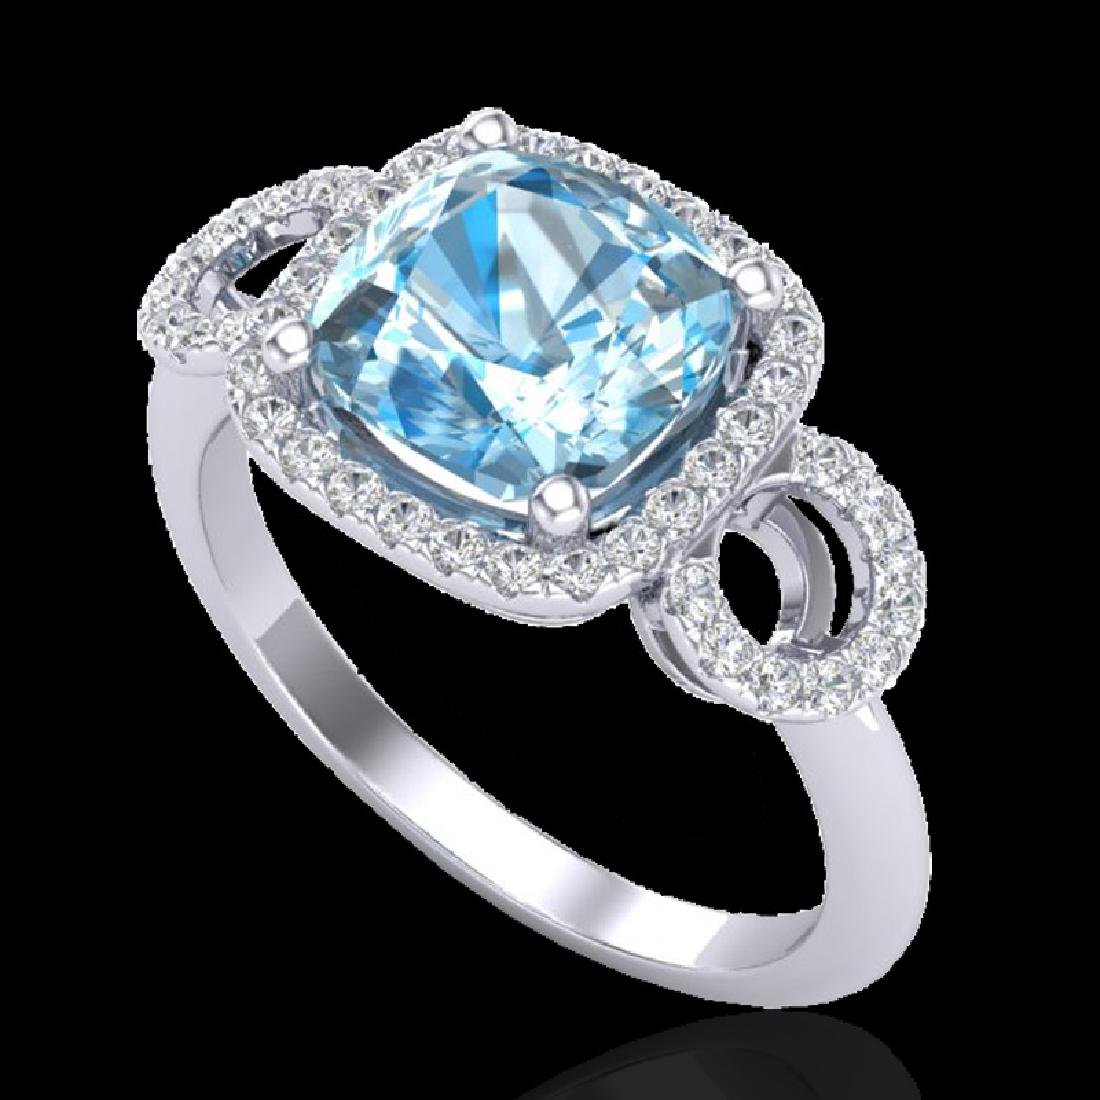 3.75 CTW Topaz & Micro VS/SI Diamond Ring 18K White - 2